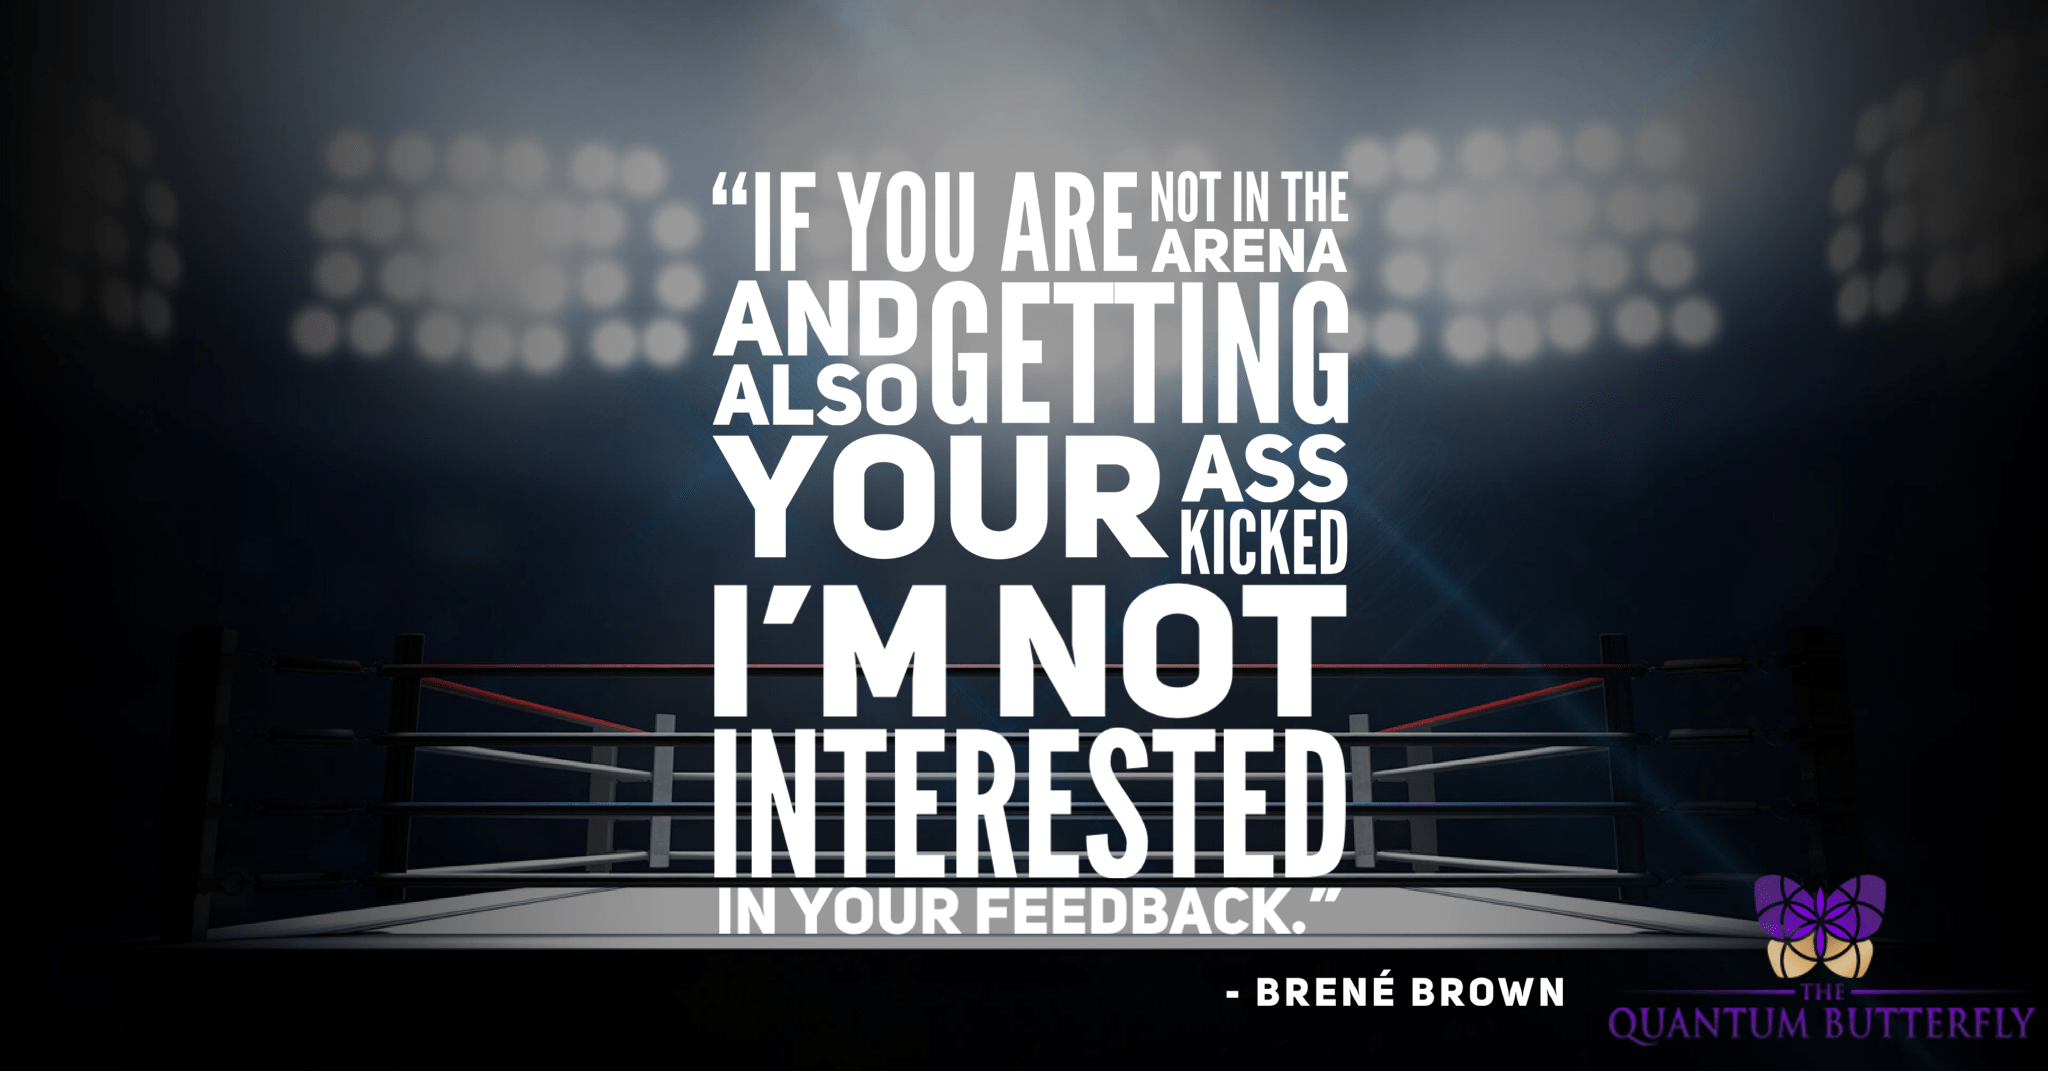 """If you are not in the arena and also getting your ass kicked…"" -Brené Brown [2048x 1072]"